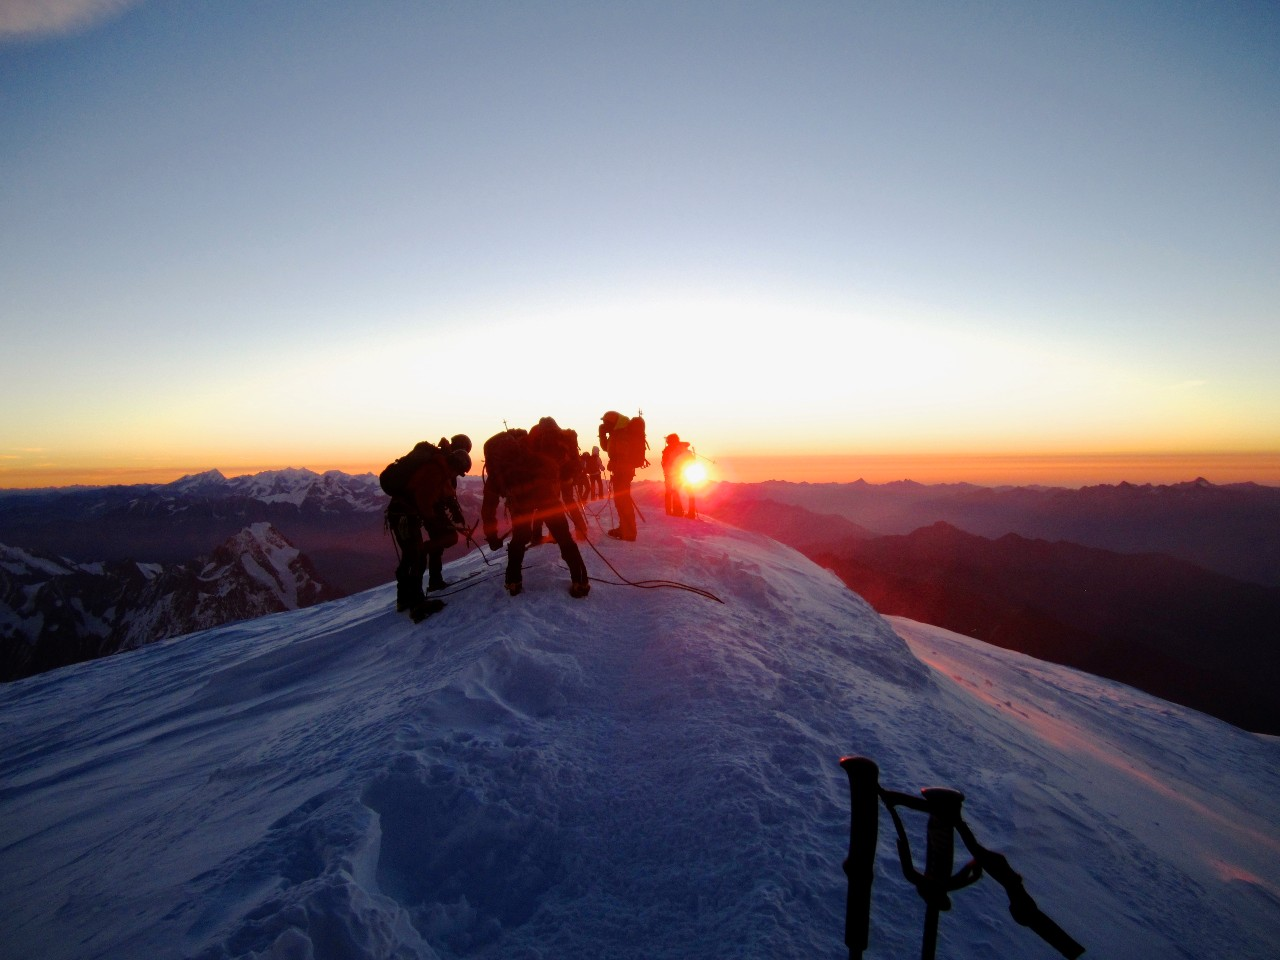 Mountaineers on a summit ridge with sunset in the background